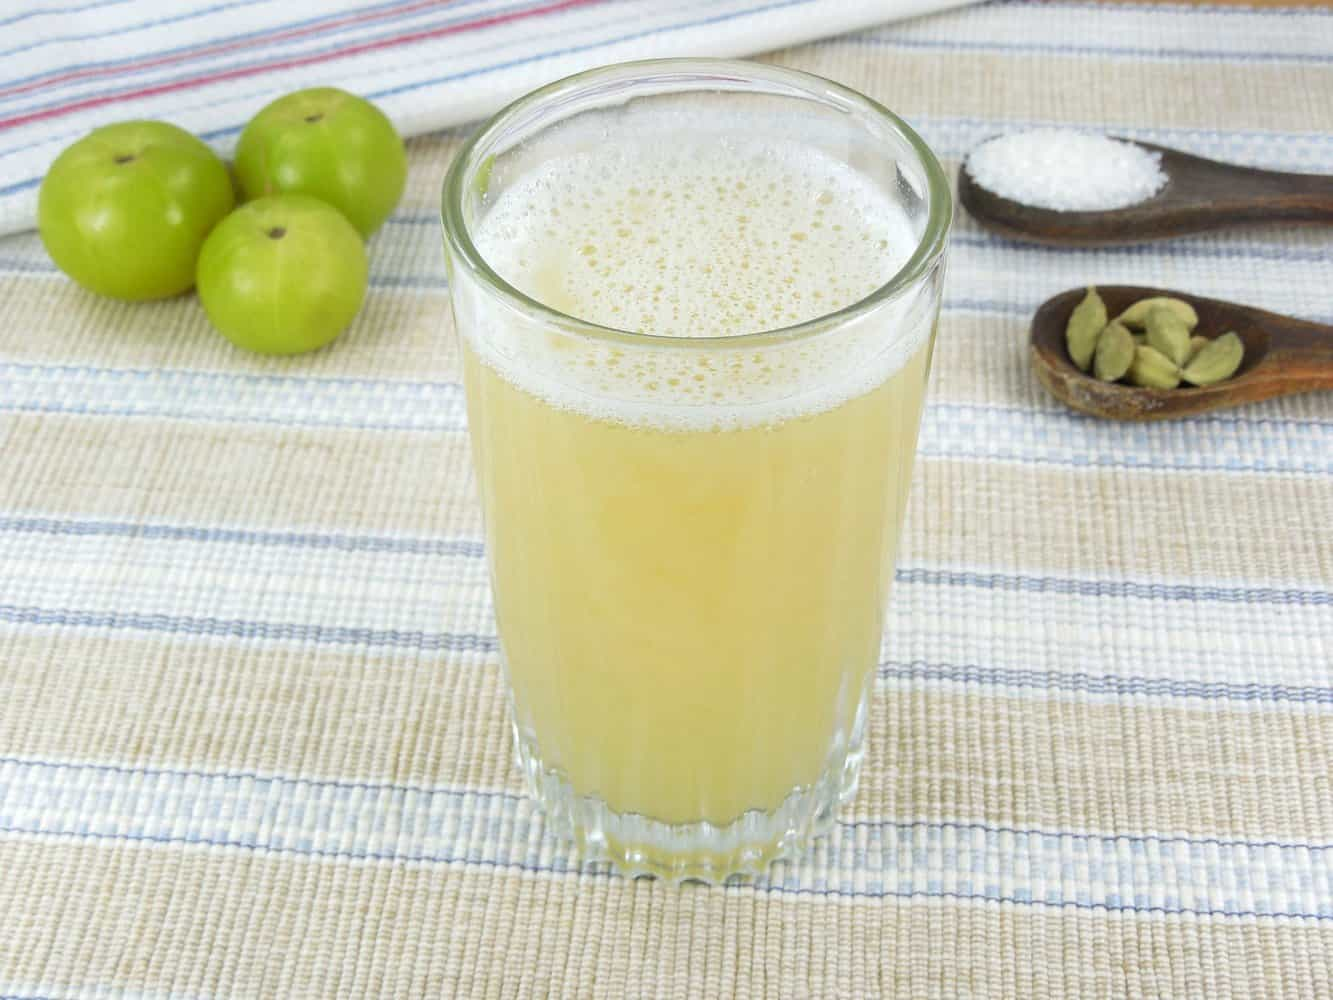 A glass of amla juice.